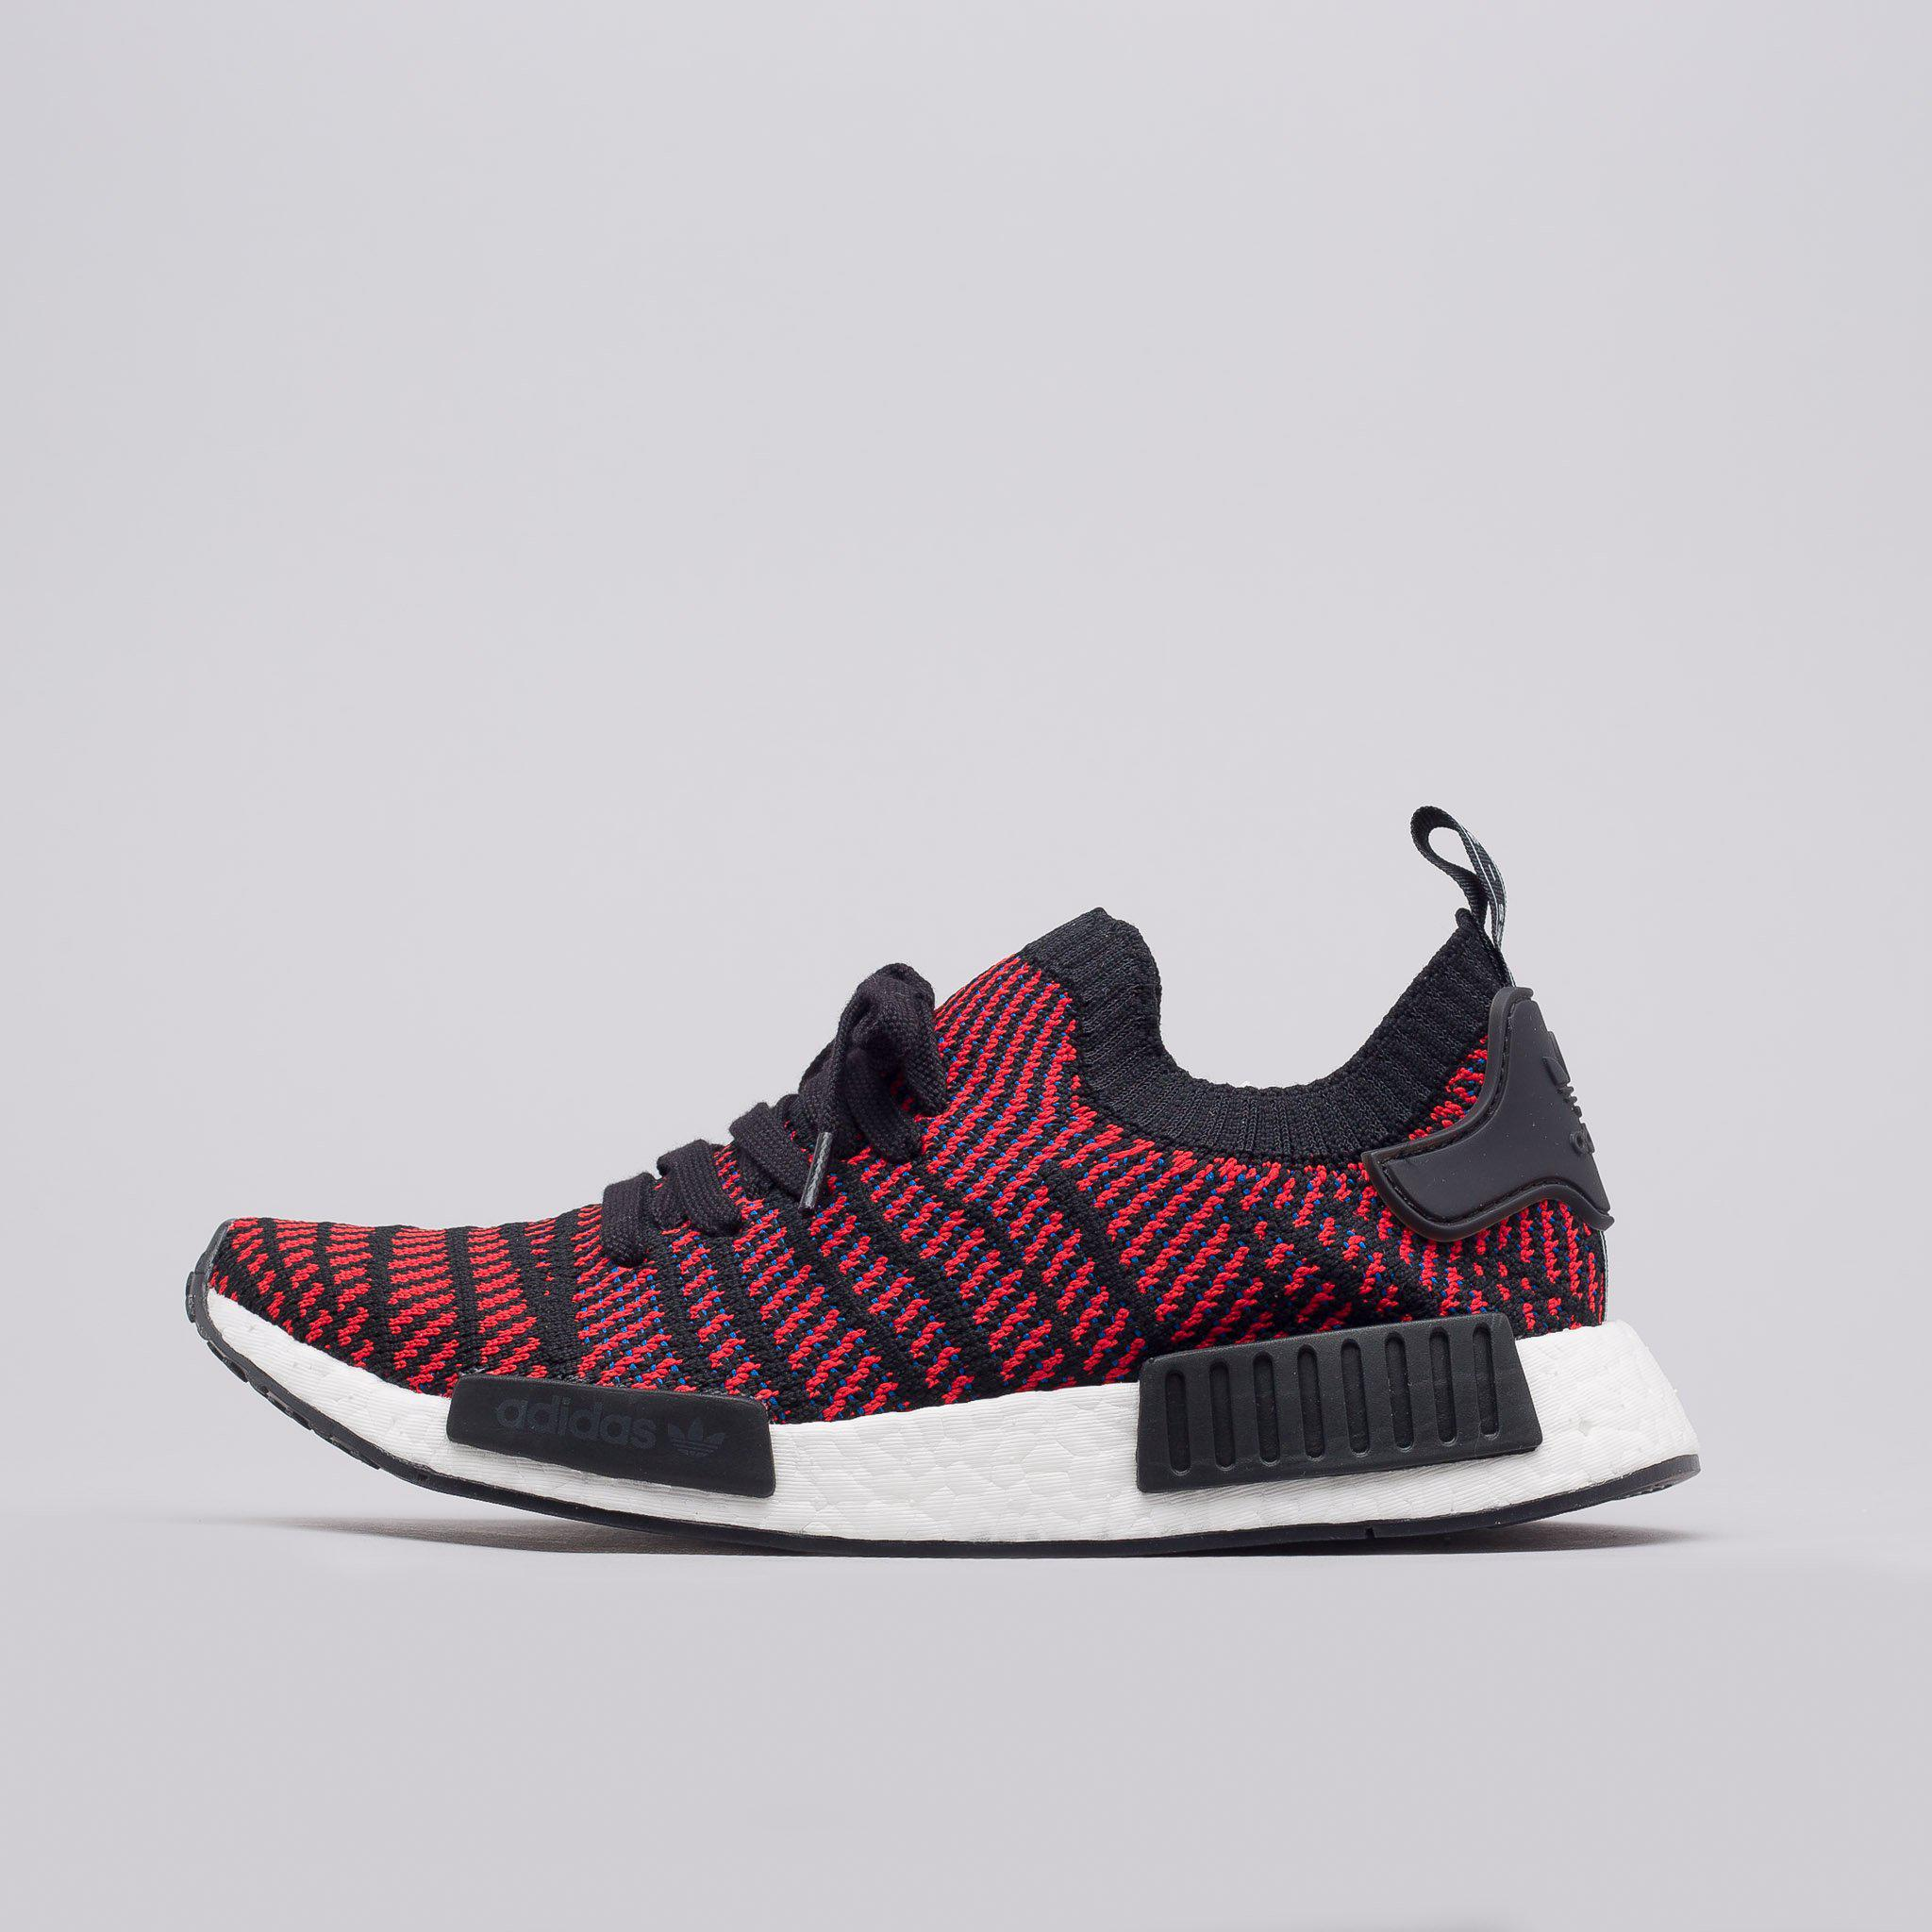 Lyst - adidas Nmd R1 Primeknit Stlt In Core Black red blue in Red ... 6d433aaec